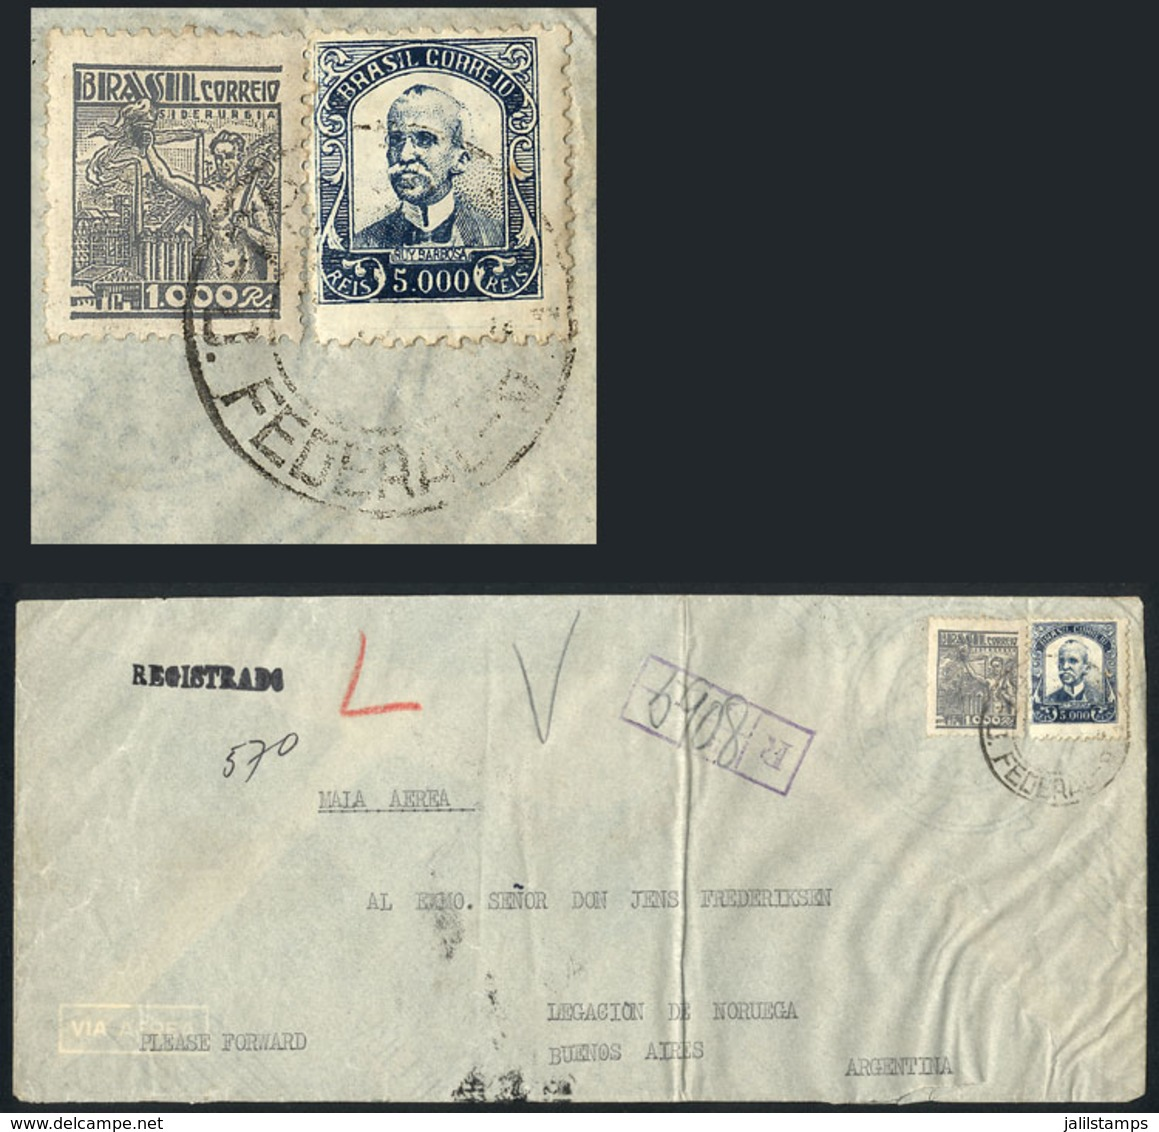 BRAZIL: Registered Airmail Cover Sent From Rio To Argentina In FE/1942 Franked With 6,000Rs., Very Nice! - Brazil